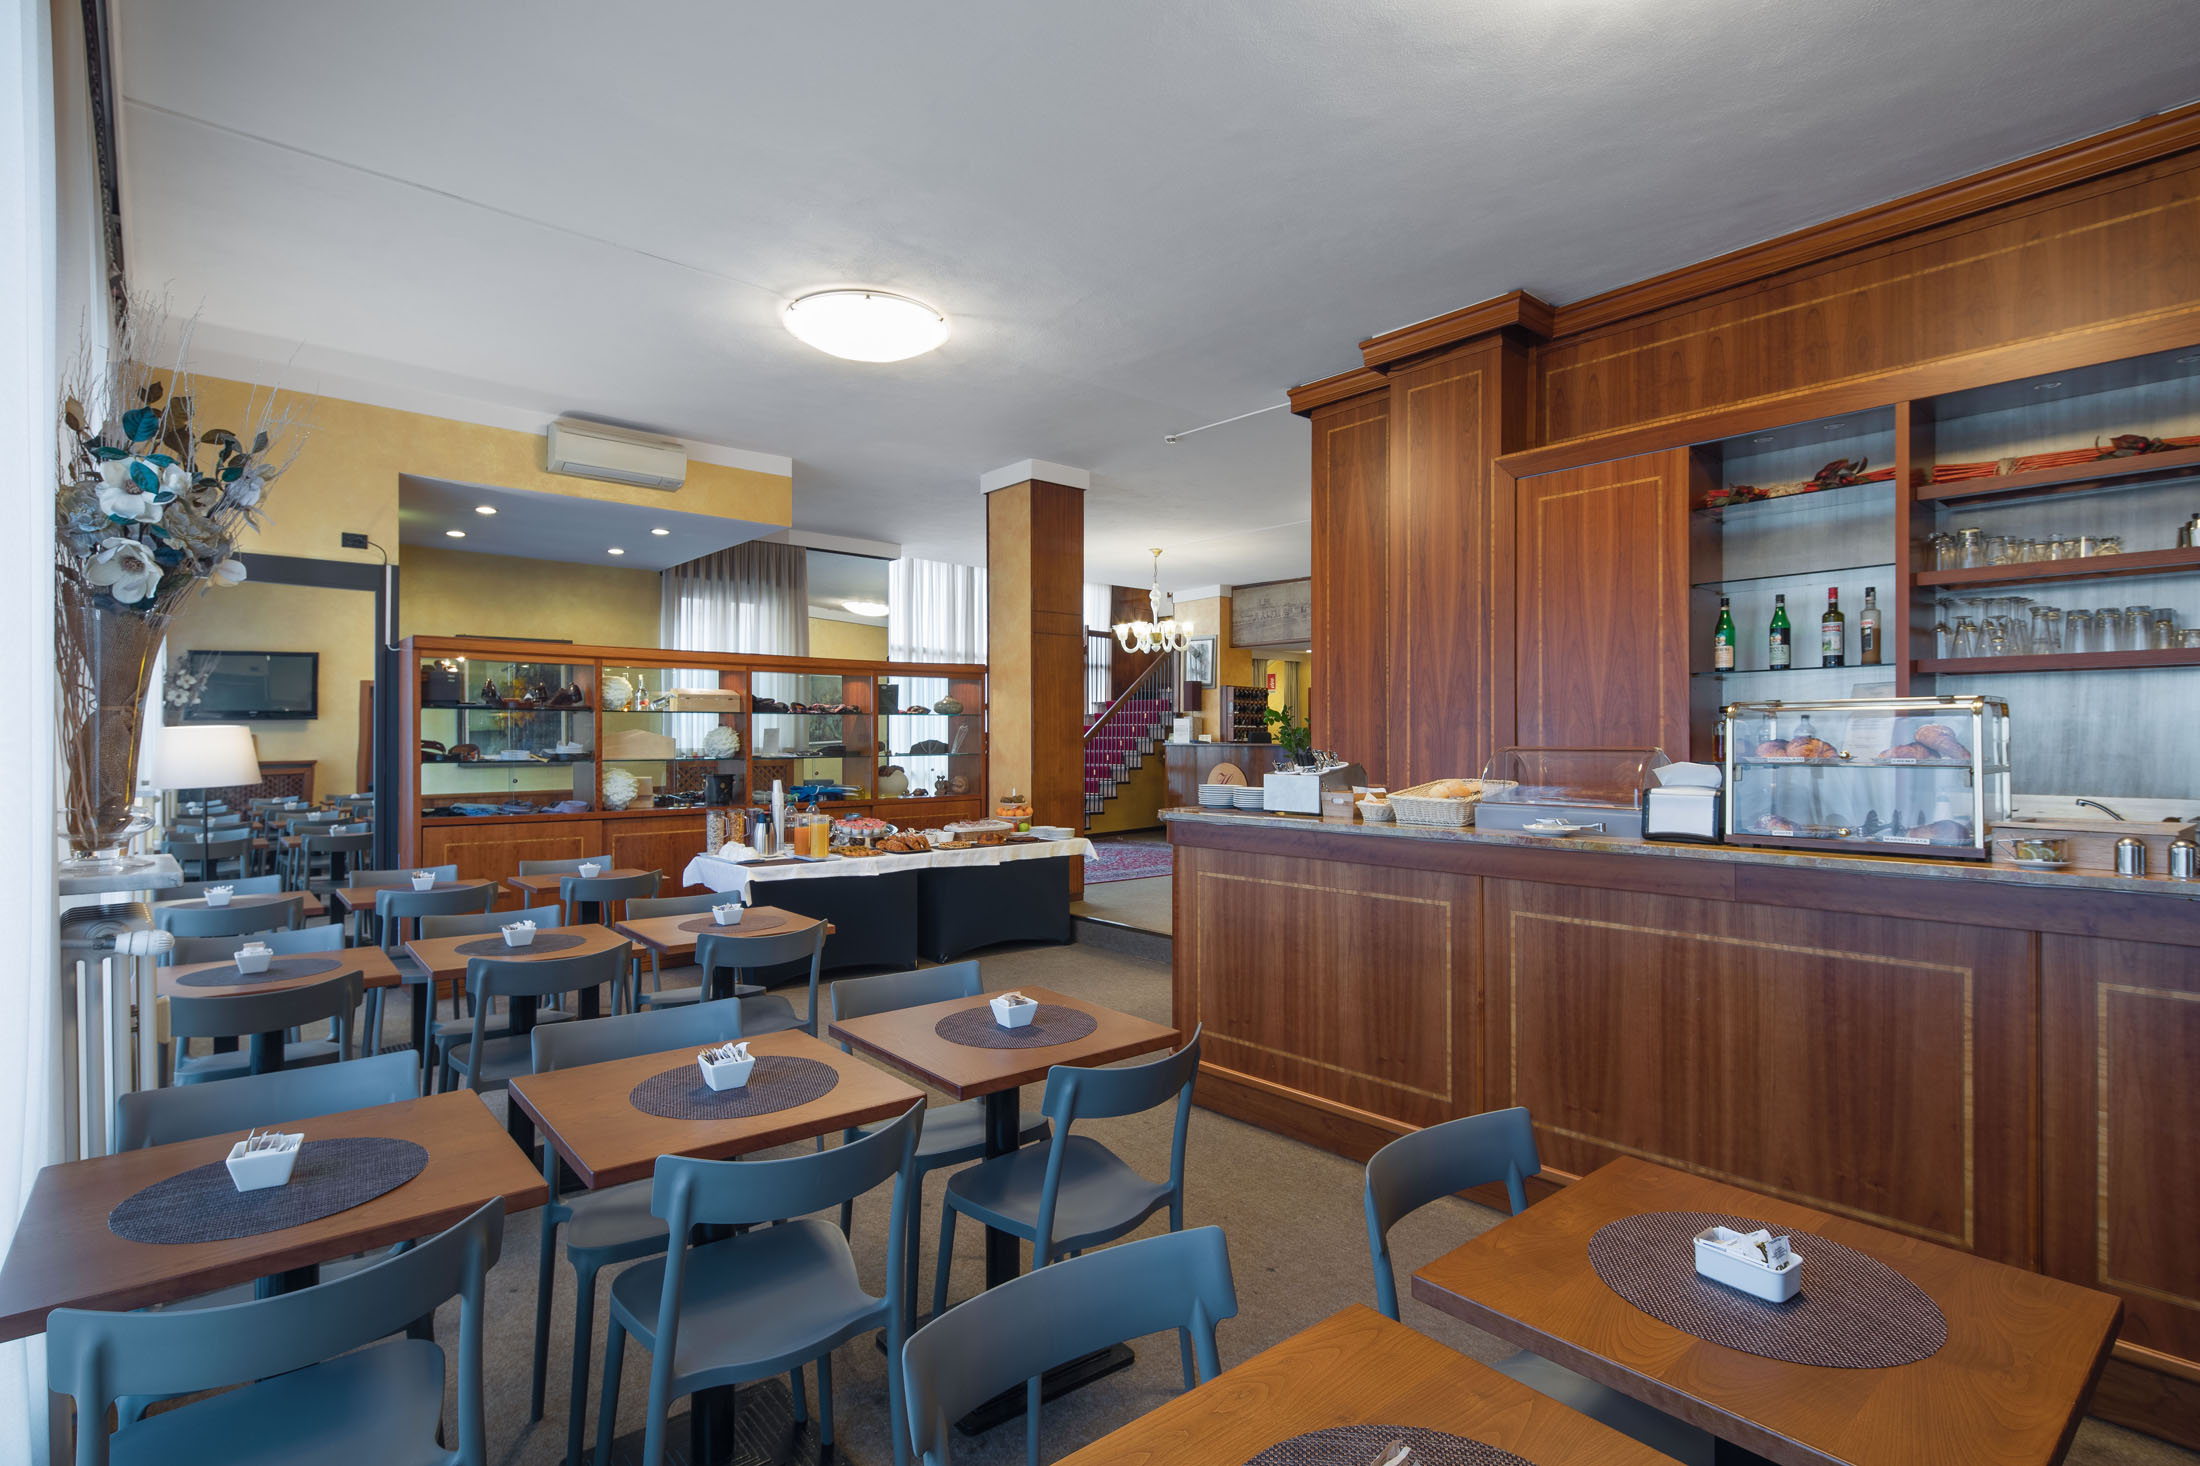 https://www.in-lombardia.it/sites/default/files/accomodation/gallery/105682/37631/excelsior_pavia_25.jpg